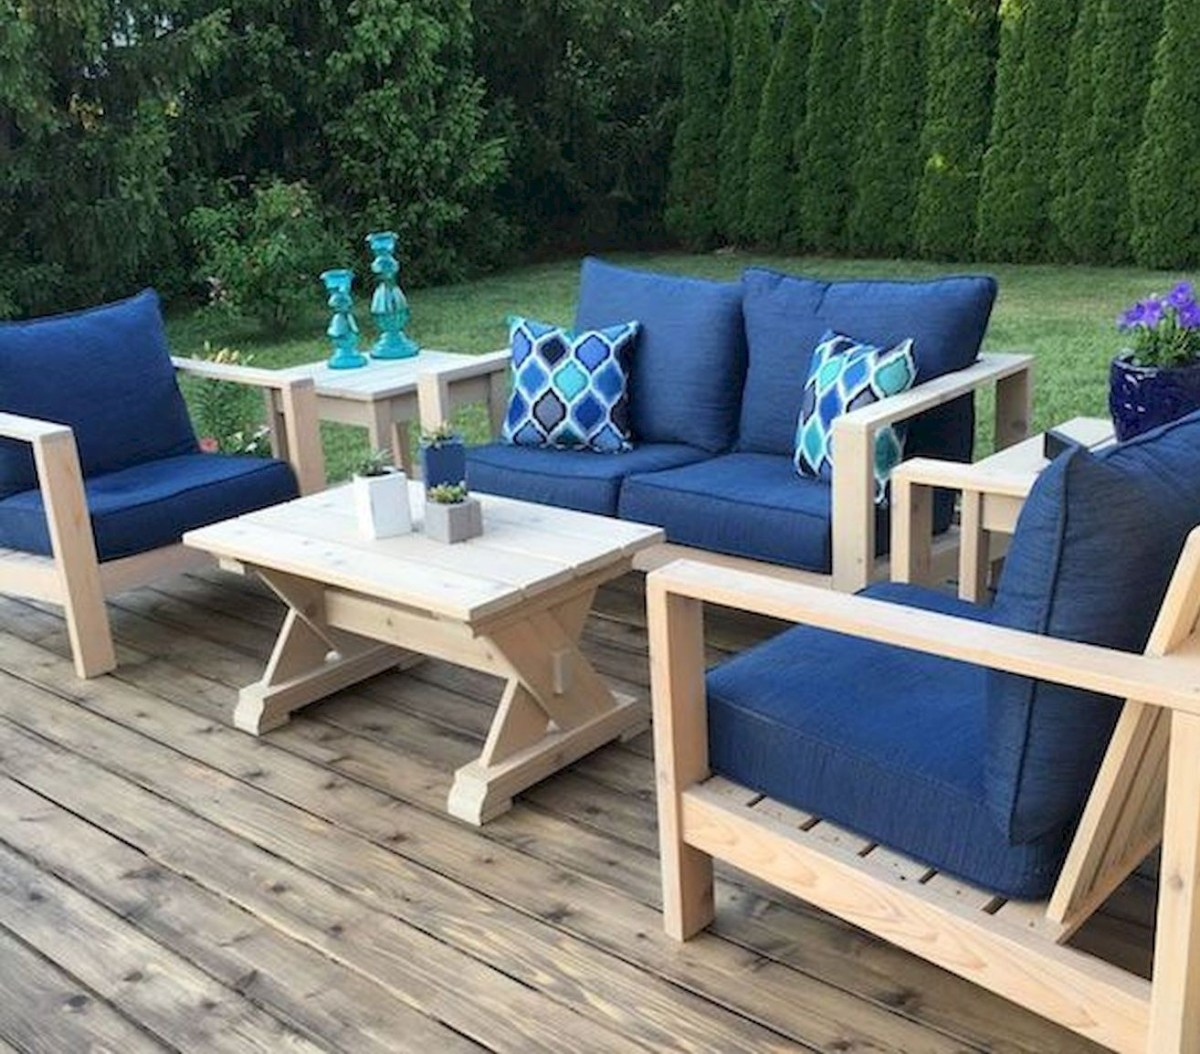 50 Amazing DIY Projects Outdoor Furniture Design Ideas (10)